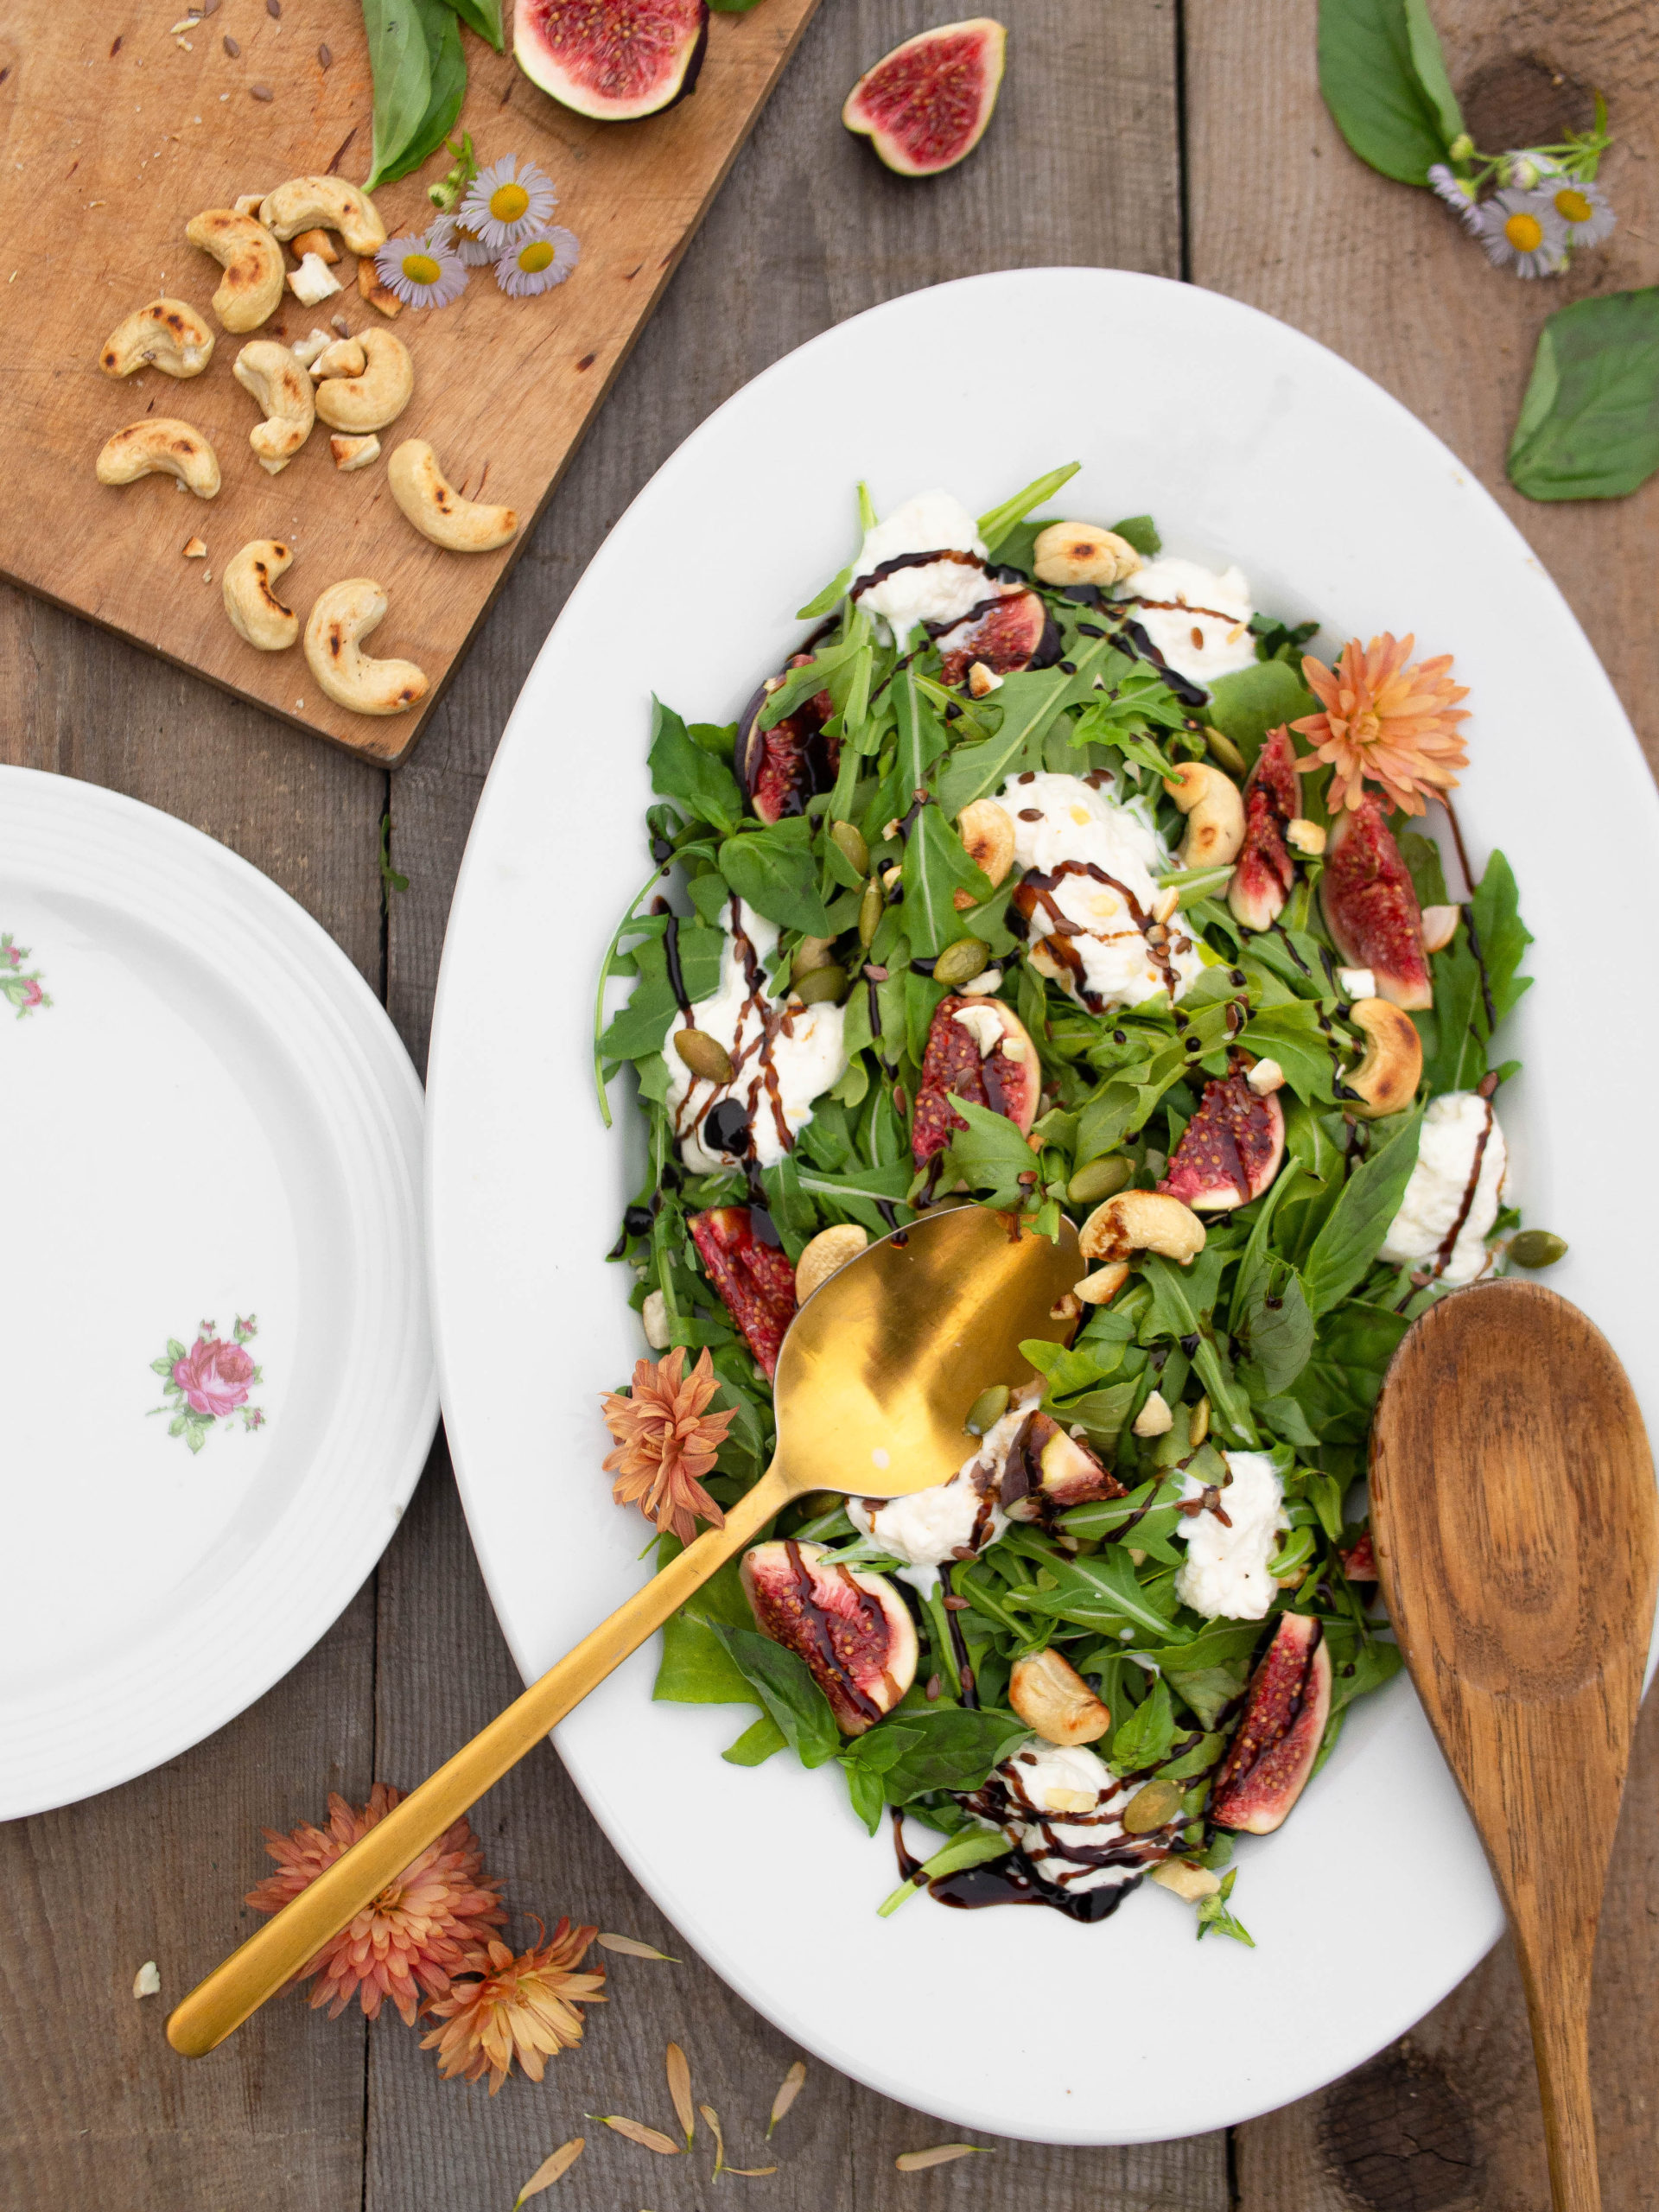 Burrata And Fig Salad With Balsamic Glaze In Travel Food